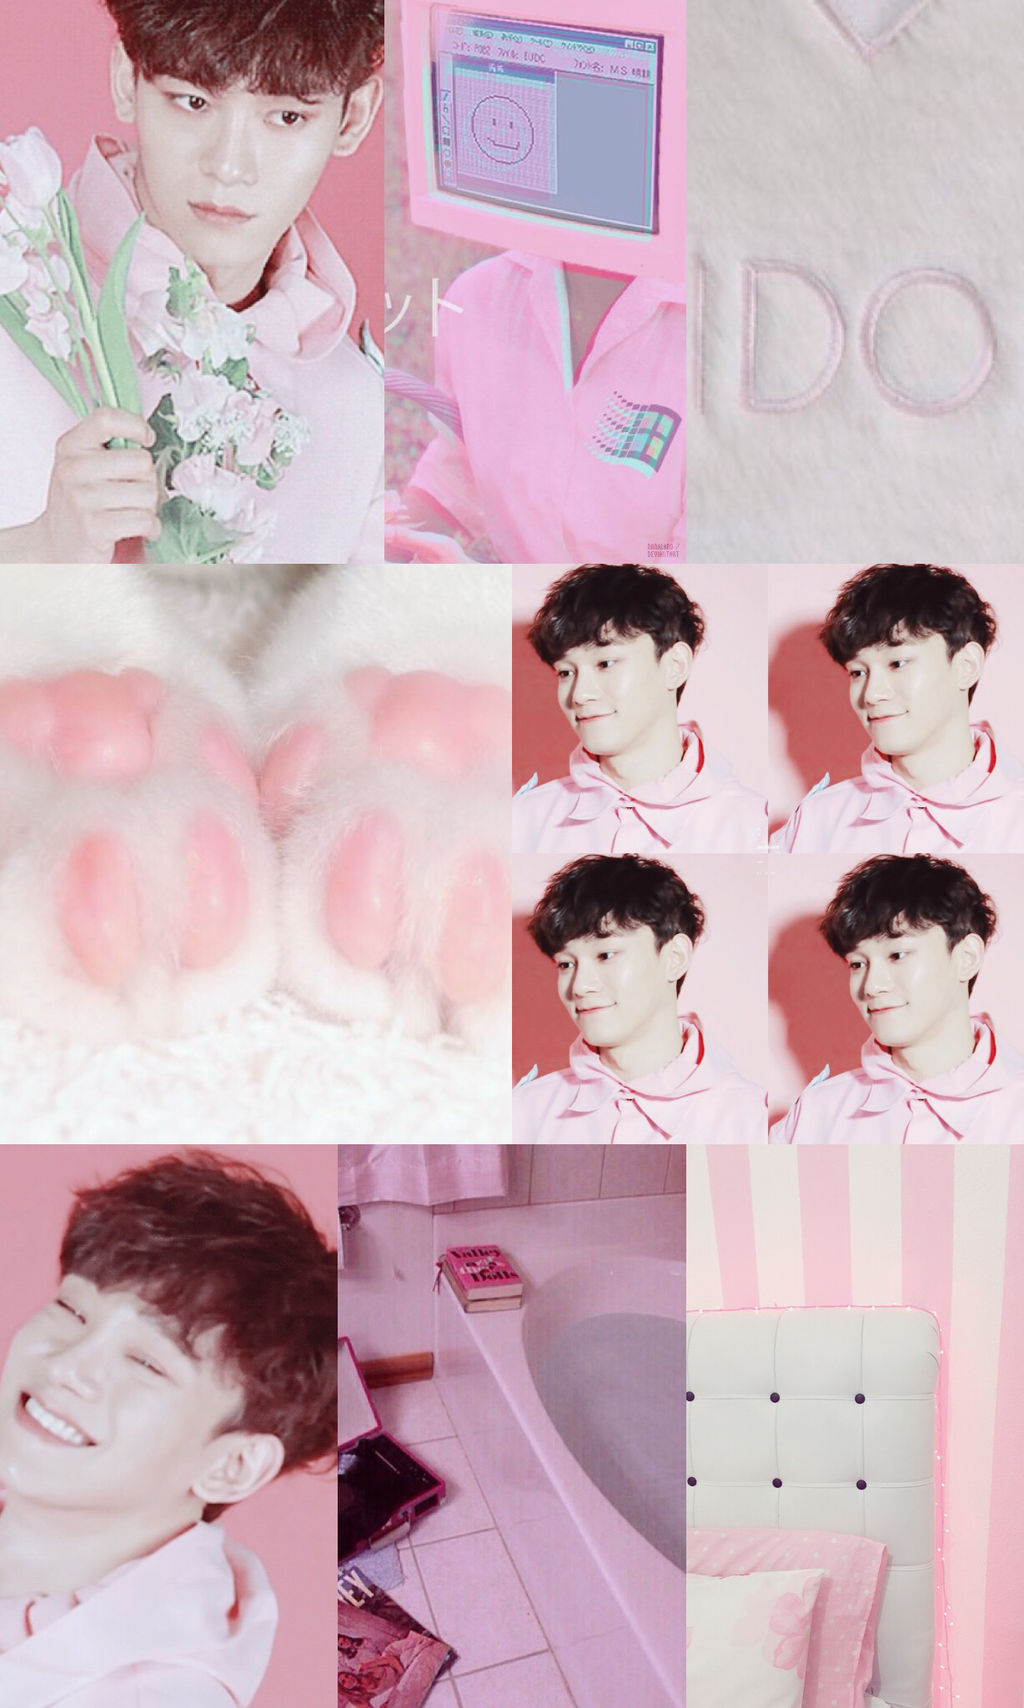 exo chen aesthetic wallpaper by nanaland dbao3os